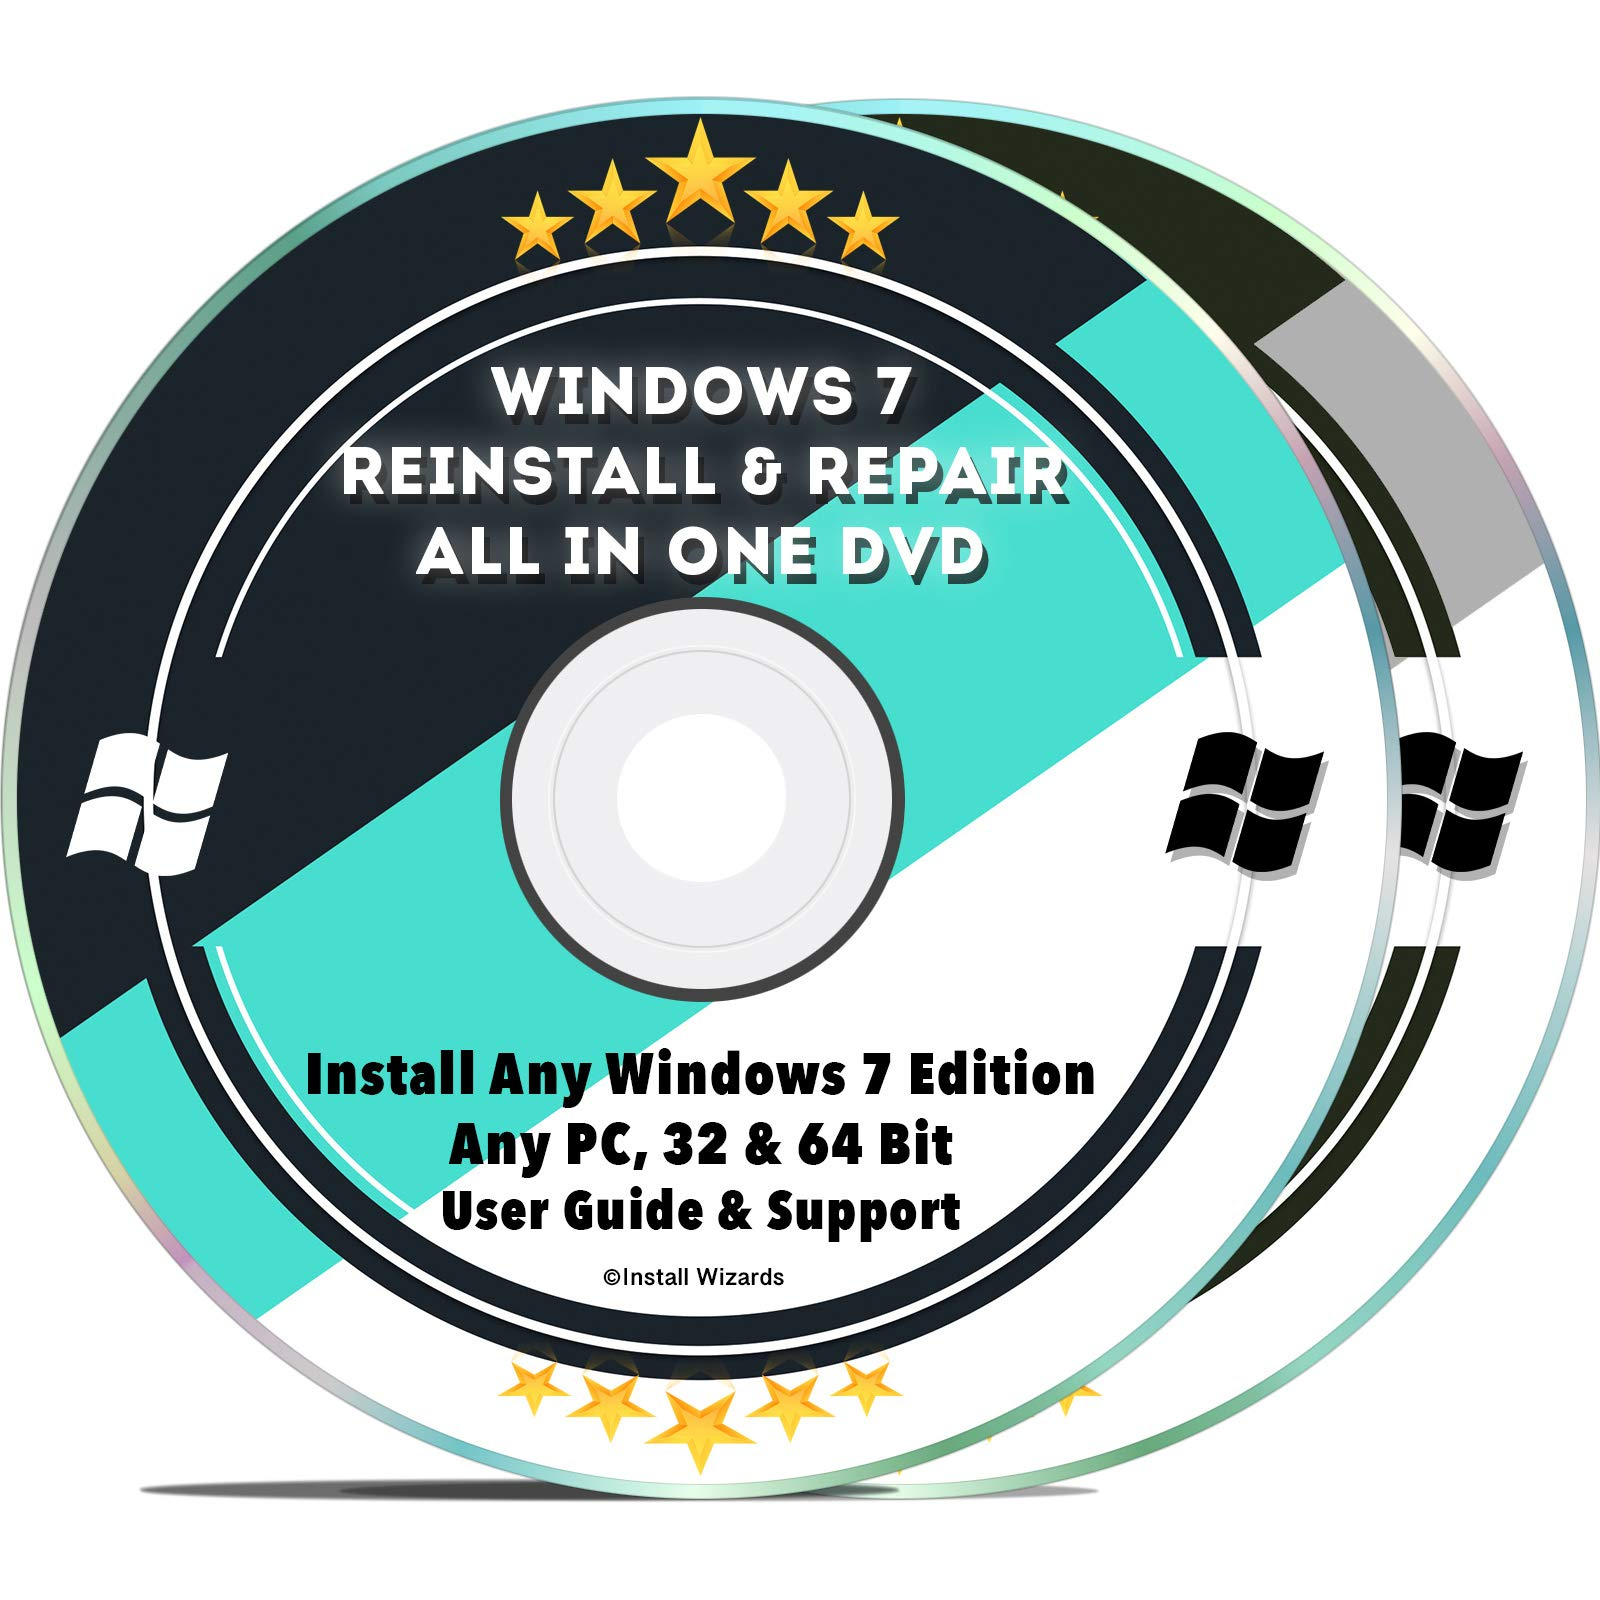 Windows 7 Compatible Repair & Reinstall Disc Set: Recovery Reboot Restore Fix Factory Reset - 32 & 64 Bit PC Computer Home Premium, Professional, Ultimate etc. + Drivers Install 2019 (2 DVD Set) by Install Wizards